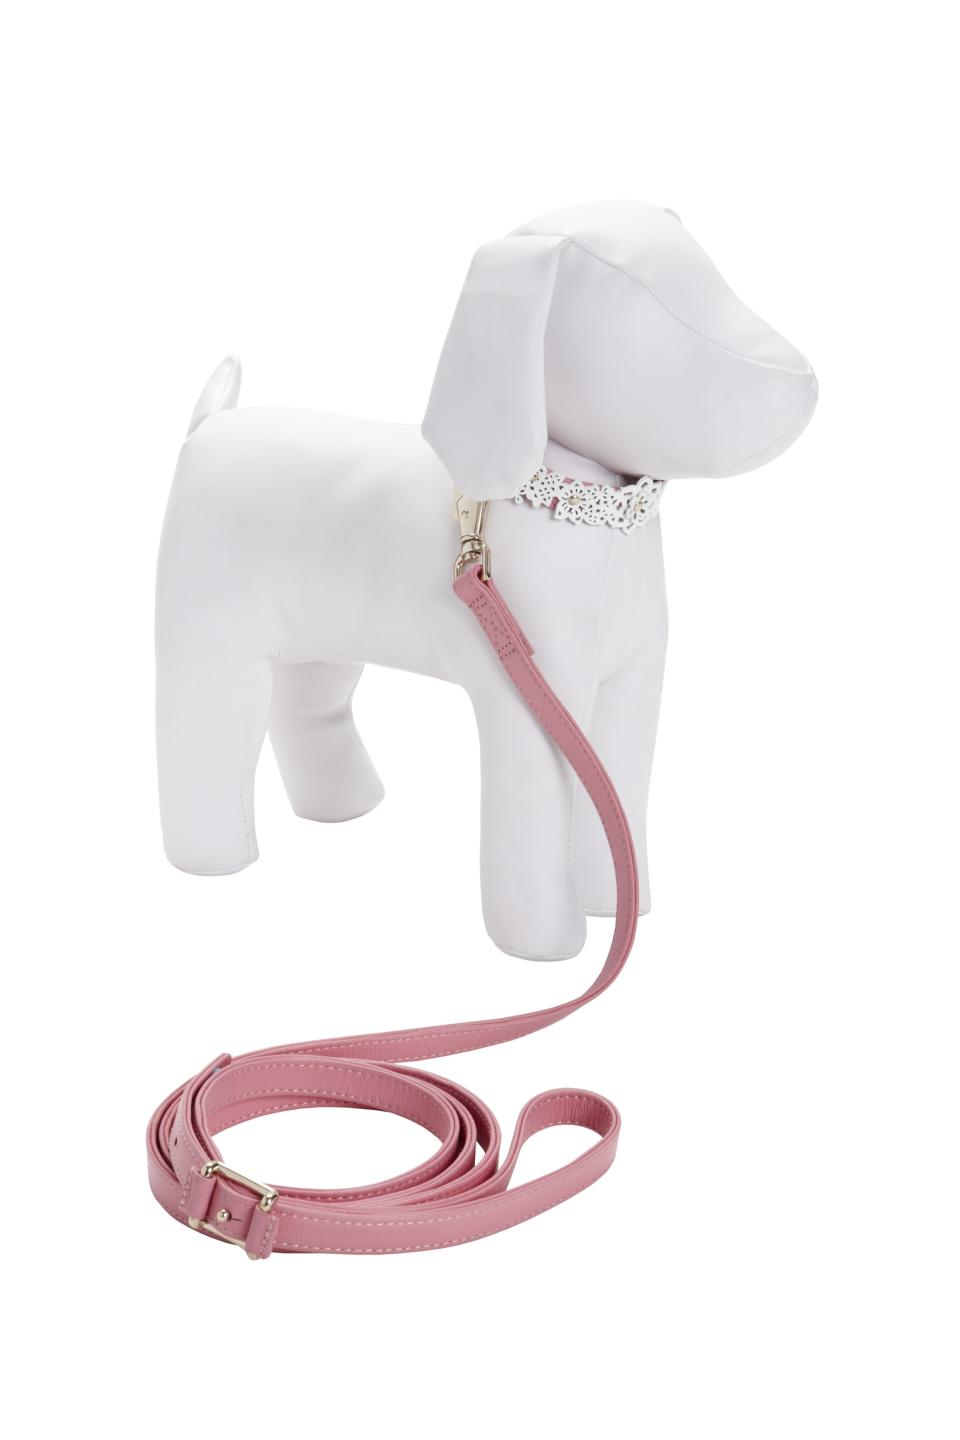 <b>Oscar de la Renta for Target + Neiman Marcus Holiday Collection Pet Collar and Leash</b><br><br> Price: $39.99<br><br>